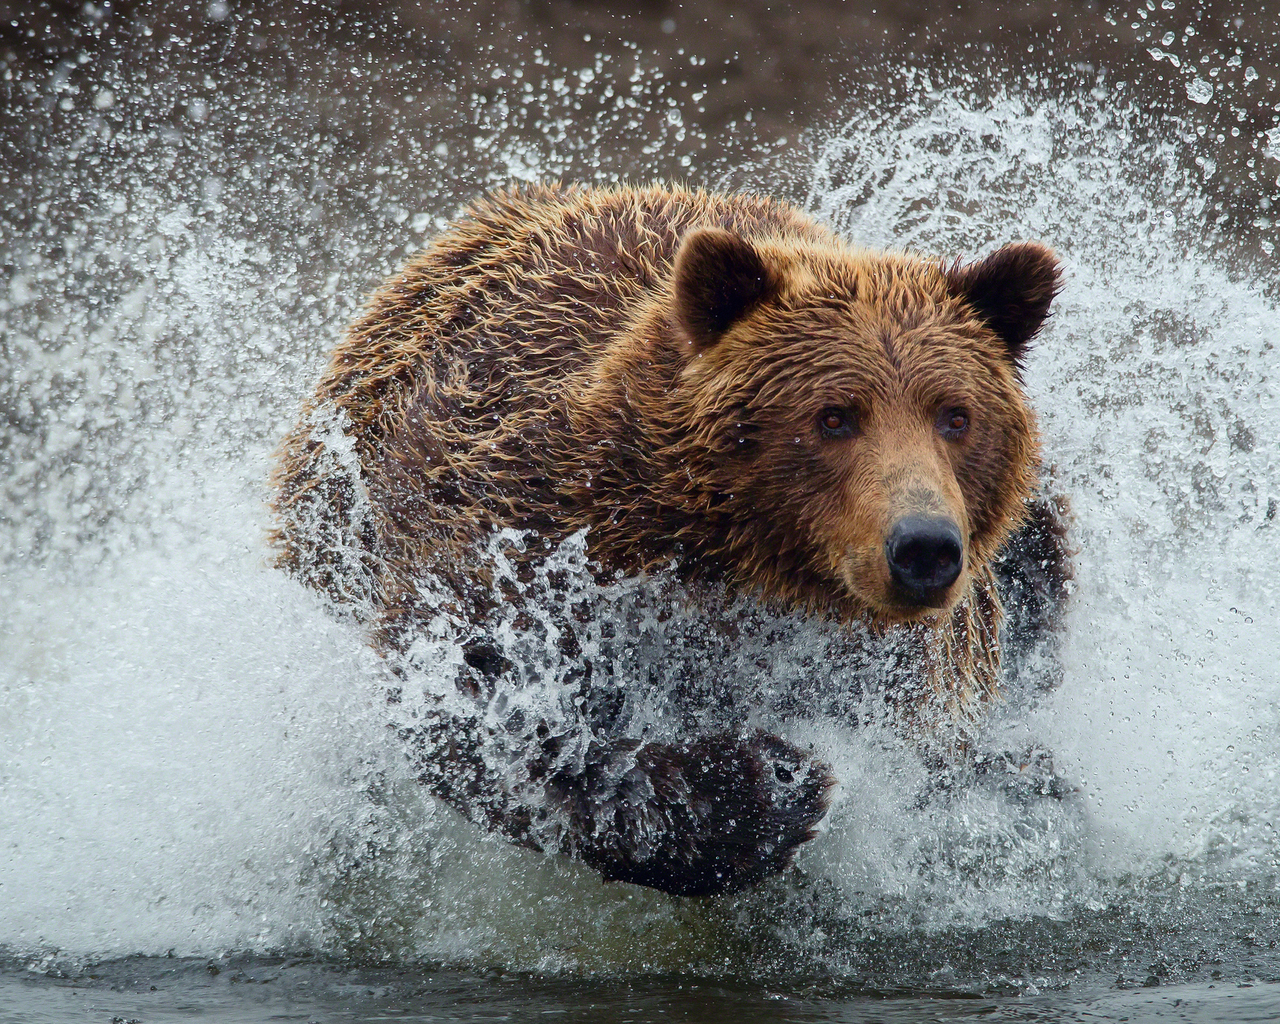 Bear Running in The River